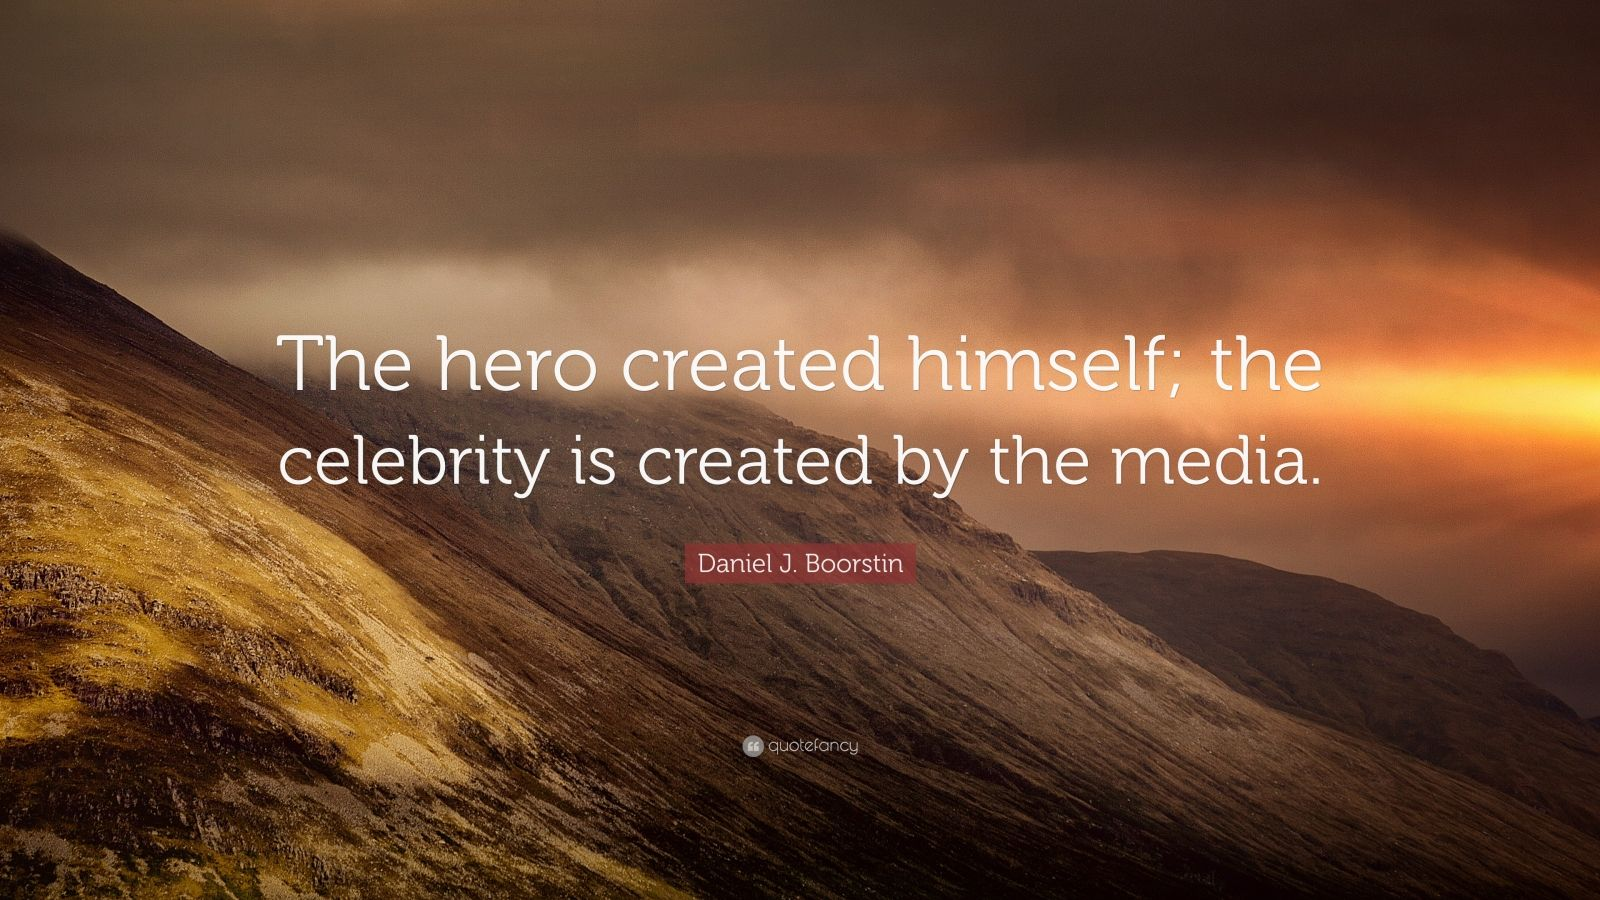 Daniel J. Boorstin quote: The hero is known for ...